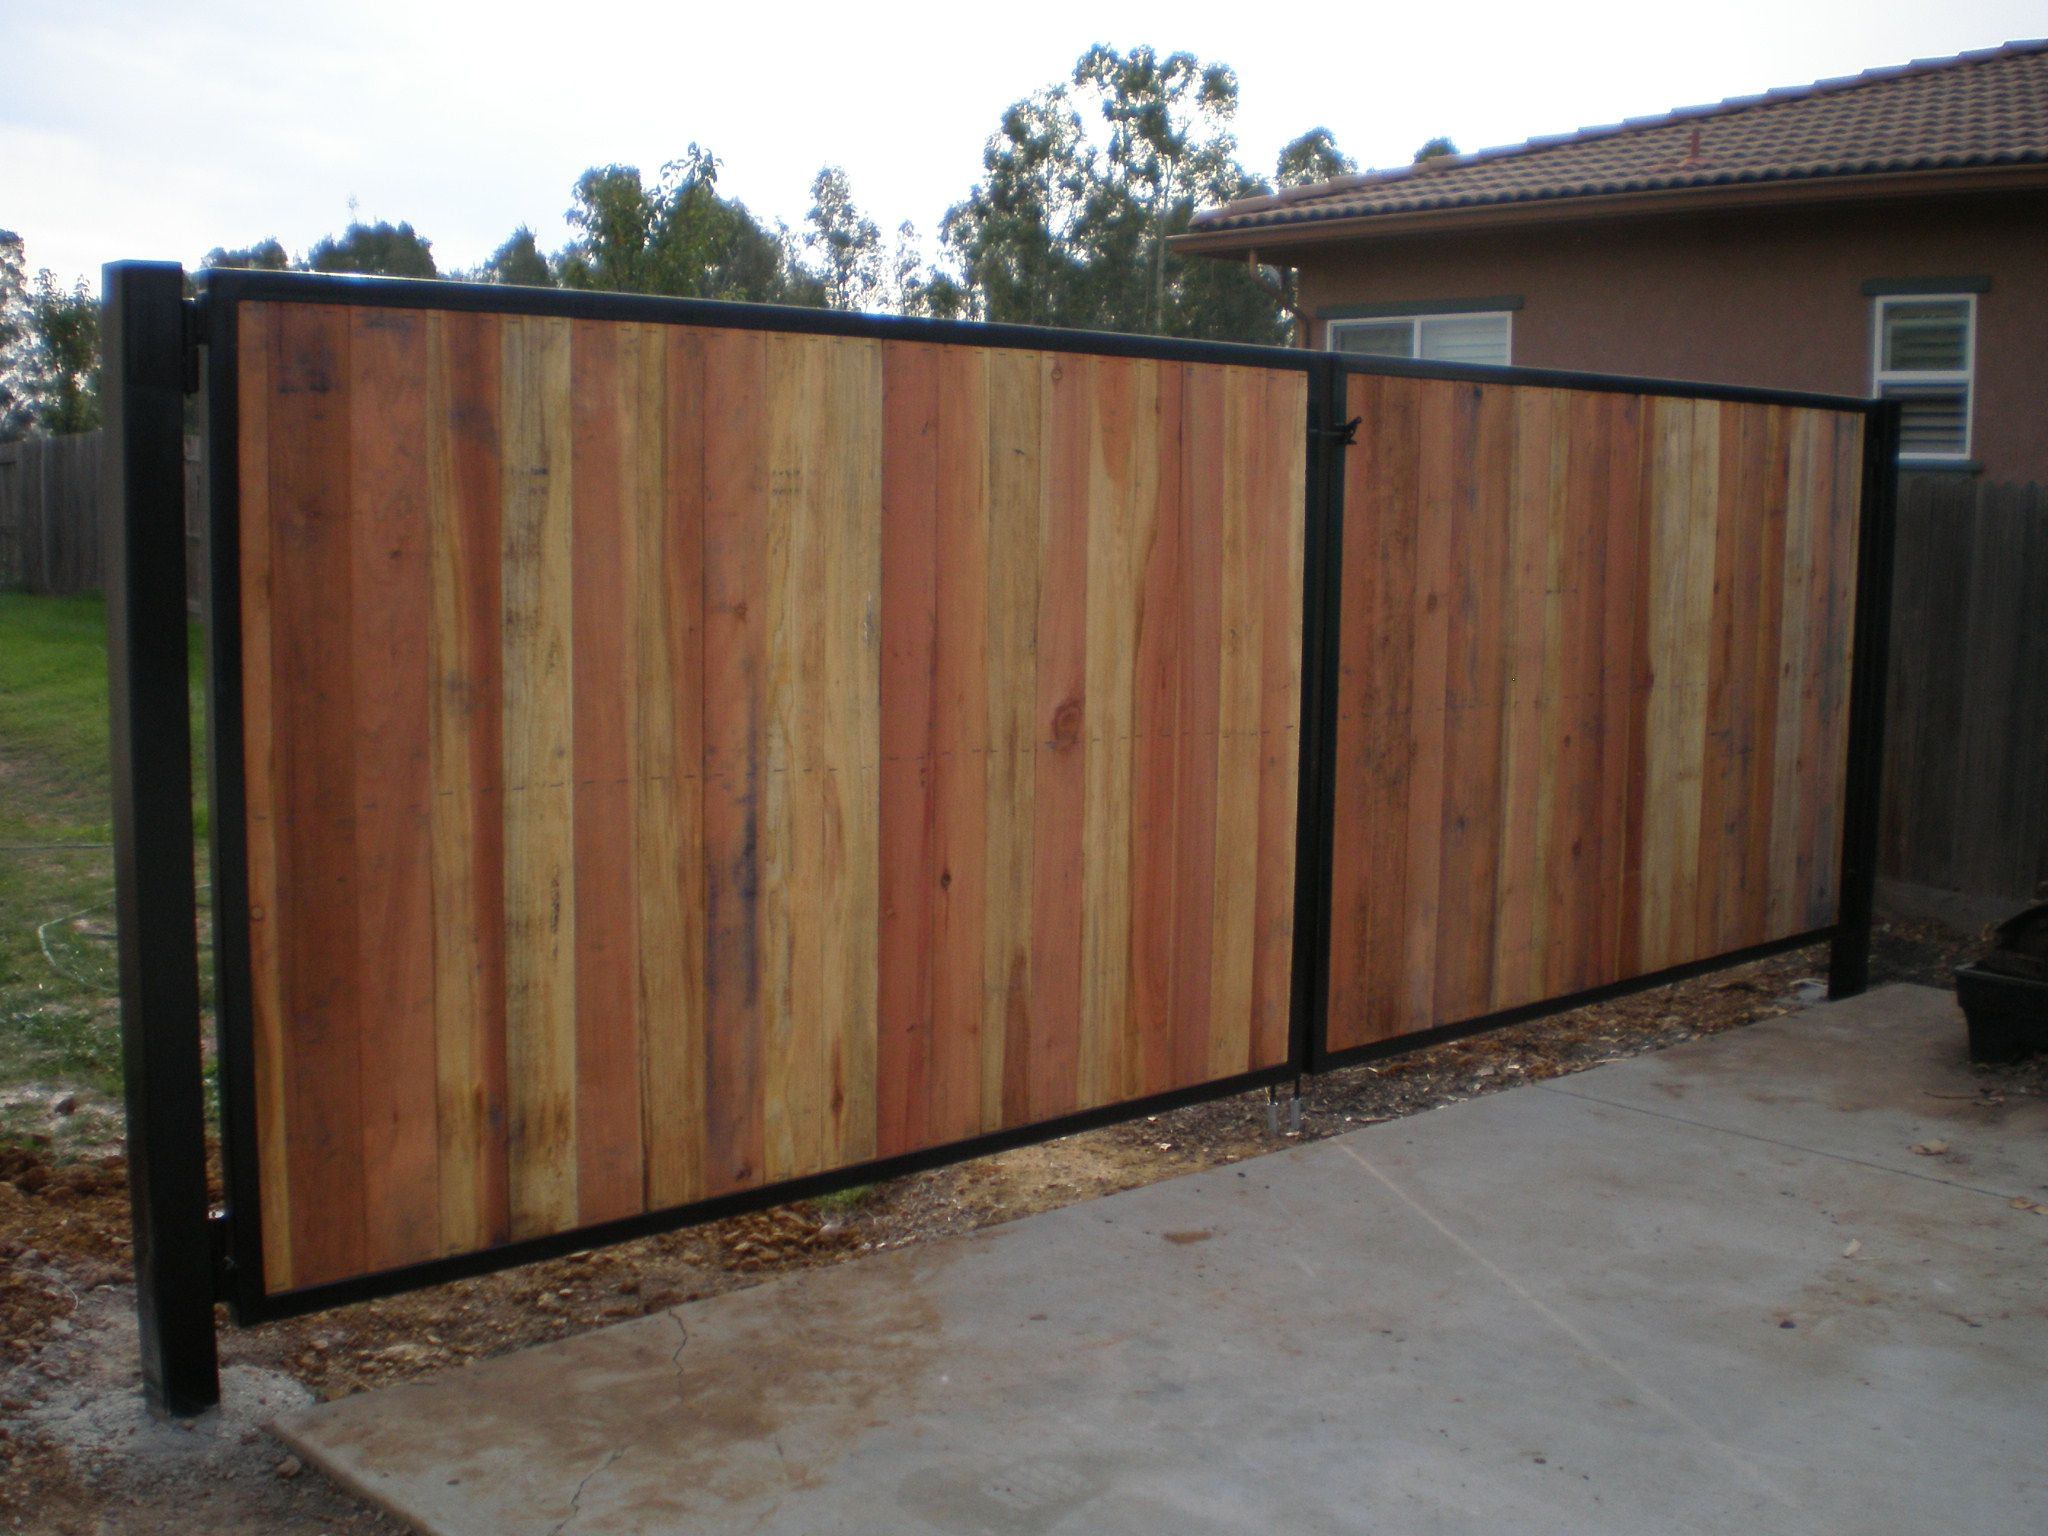 Wood Fence with Metal Gate Frame has